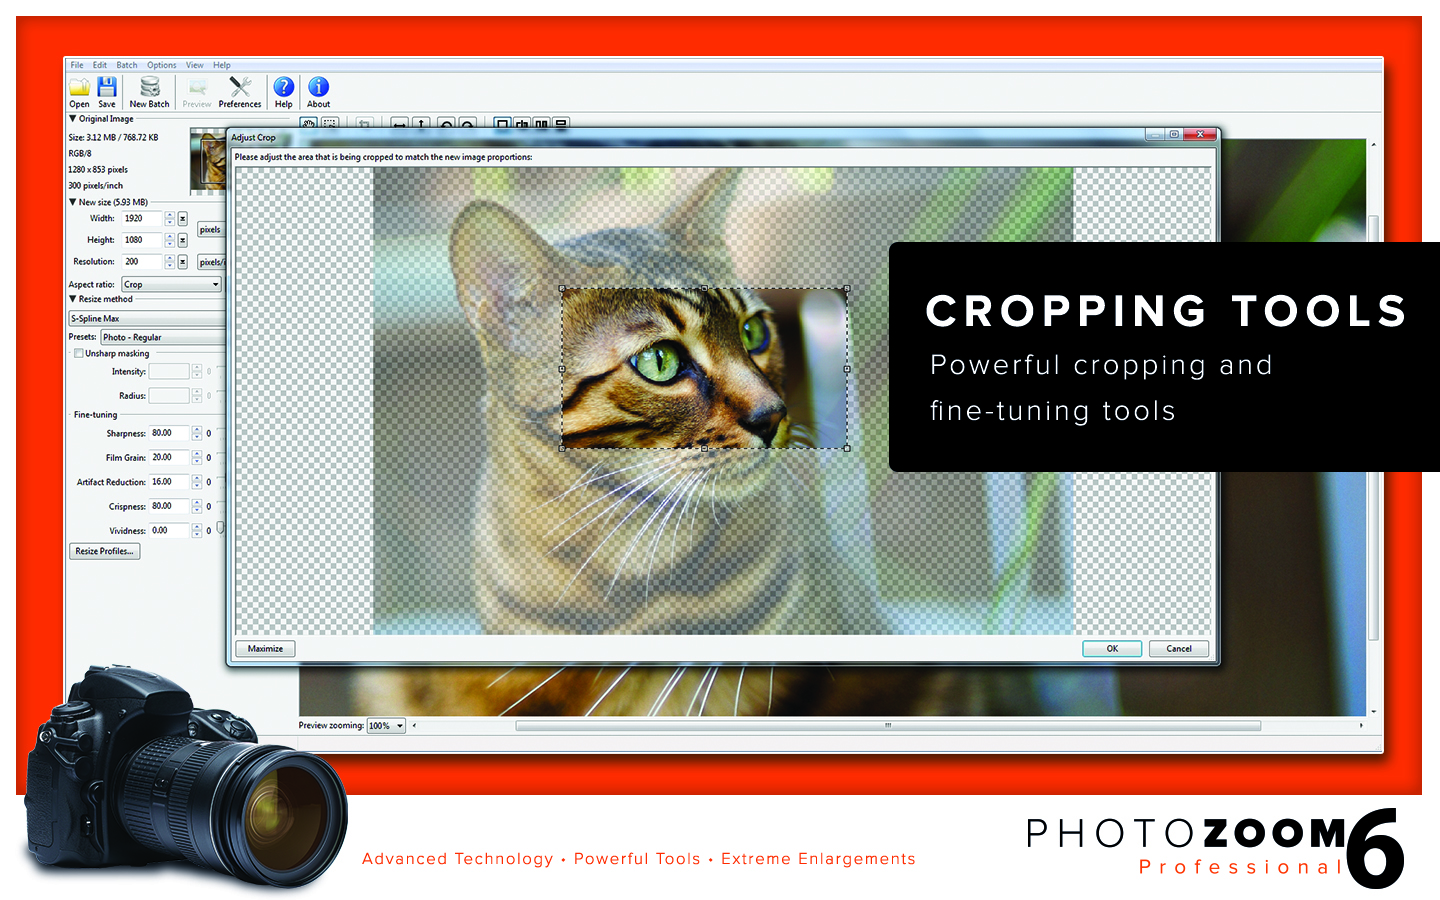 photozoom pro 6 1 selling logo software for over 15 years photo resizing made easy